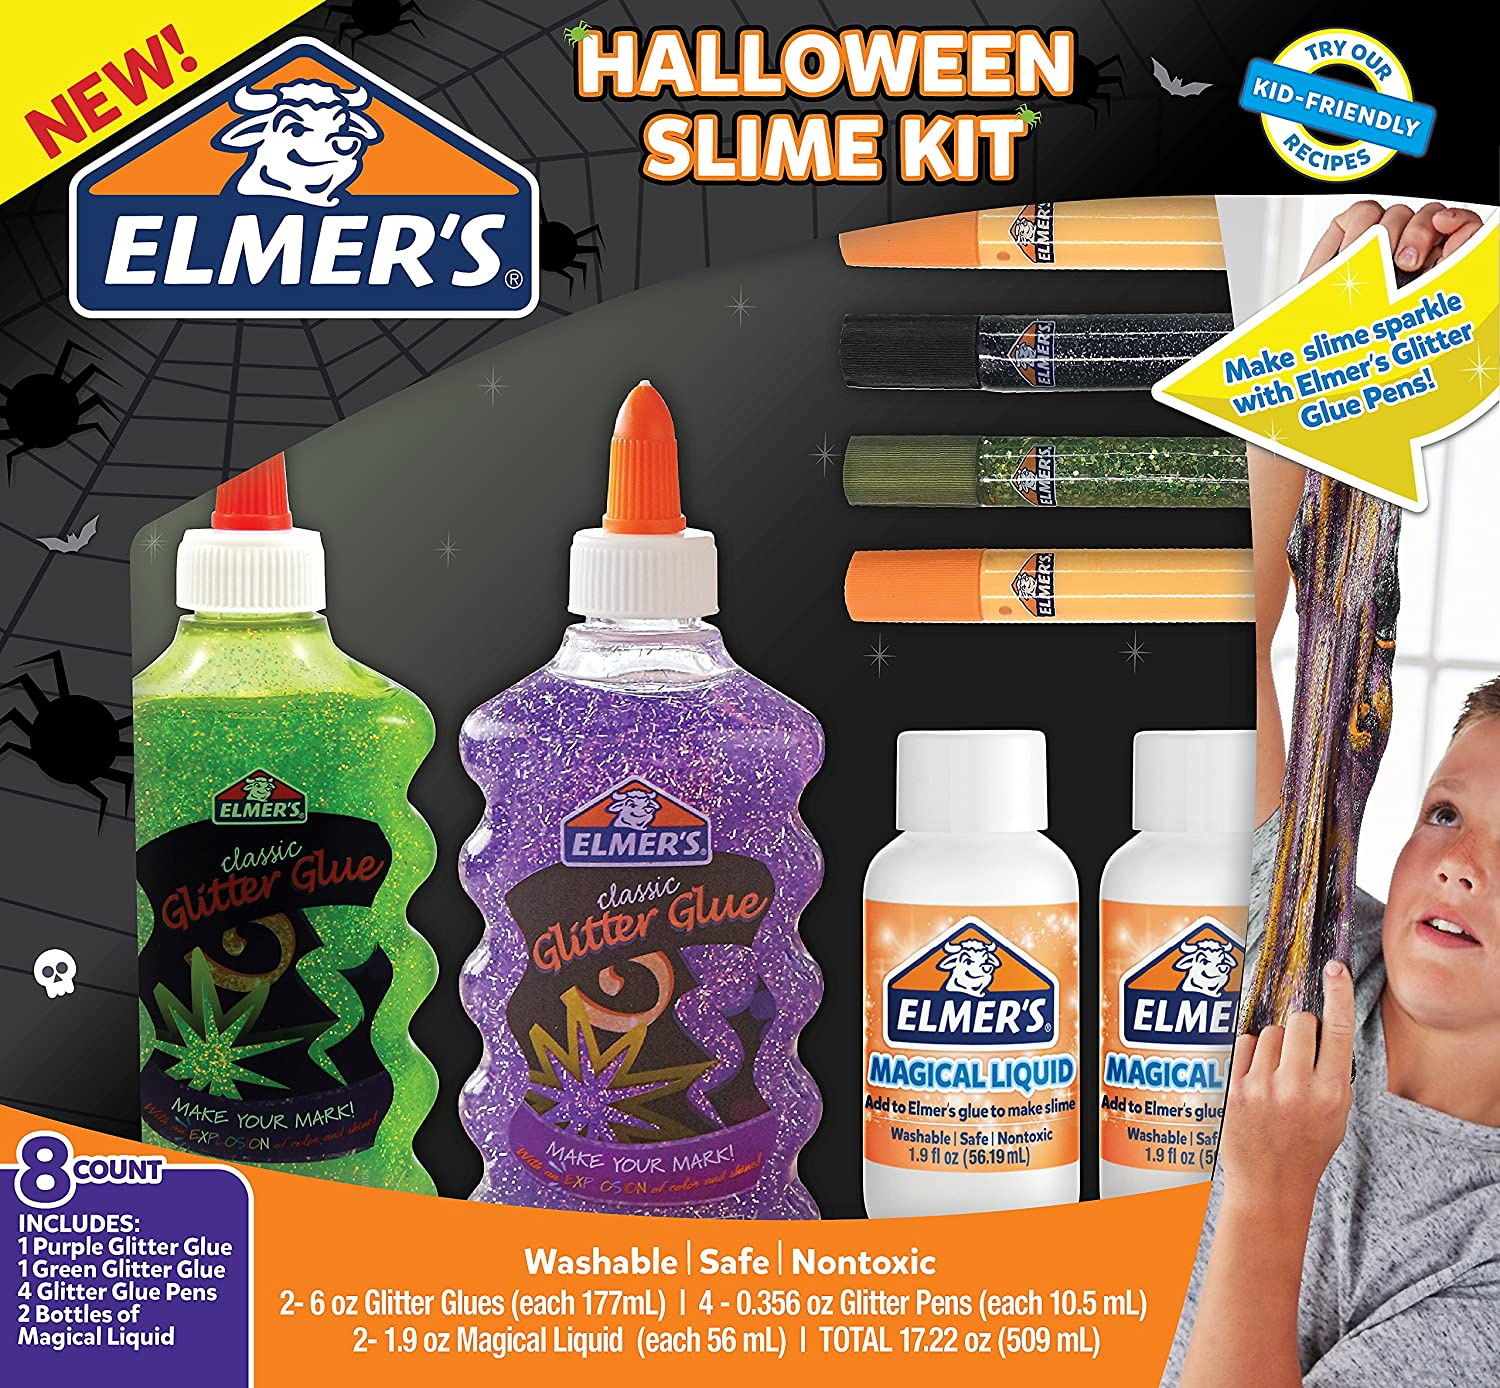 amazoncom elmers halloween slime kit glitter glue glitter pens magical liquid activator solution 8 count office products - Kid Friendly Halloween Movie